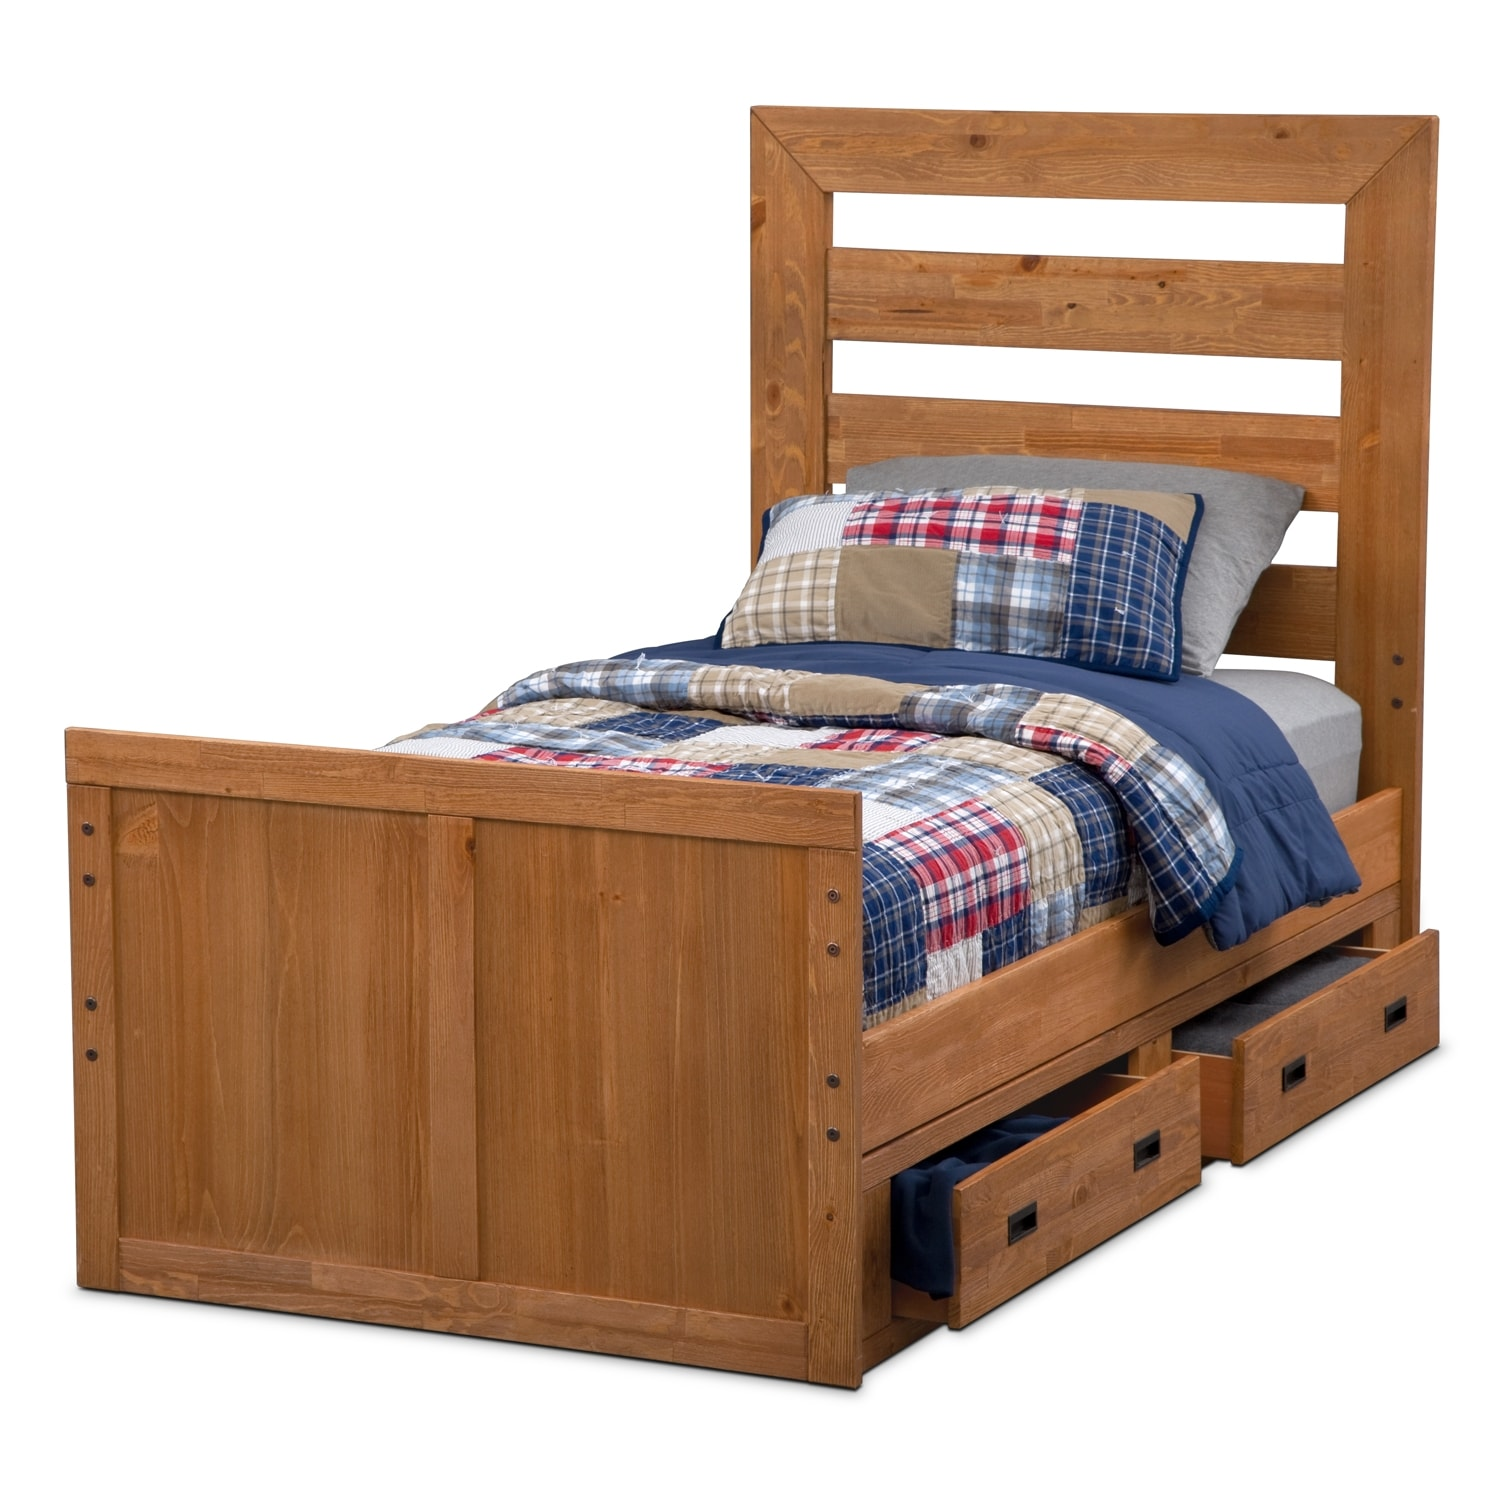 Alpine panel kids furniture twin bed w 2 drawer storage value city furniture - Kids twin beds with storage drawers ...